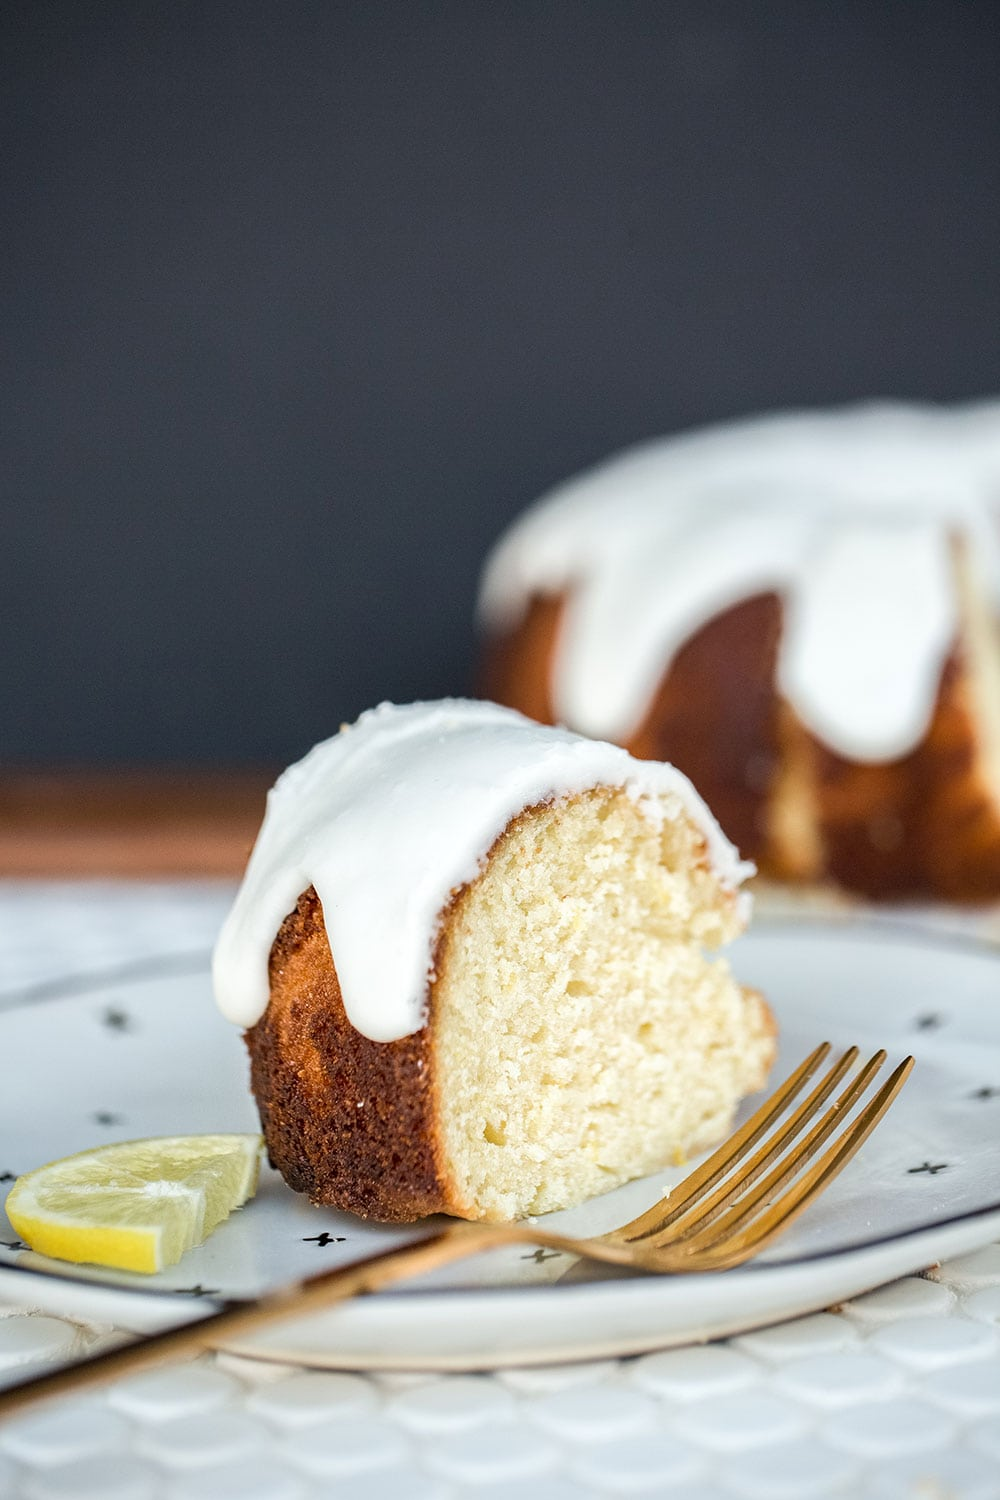 Slice of lemon bundt cake